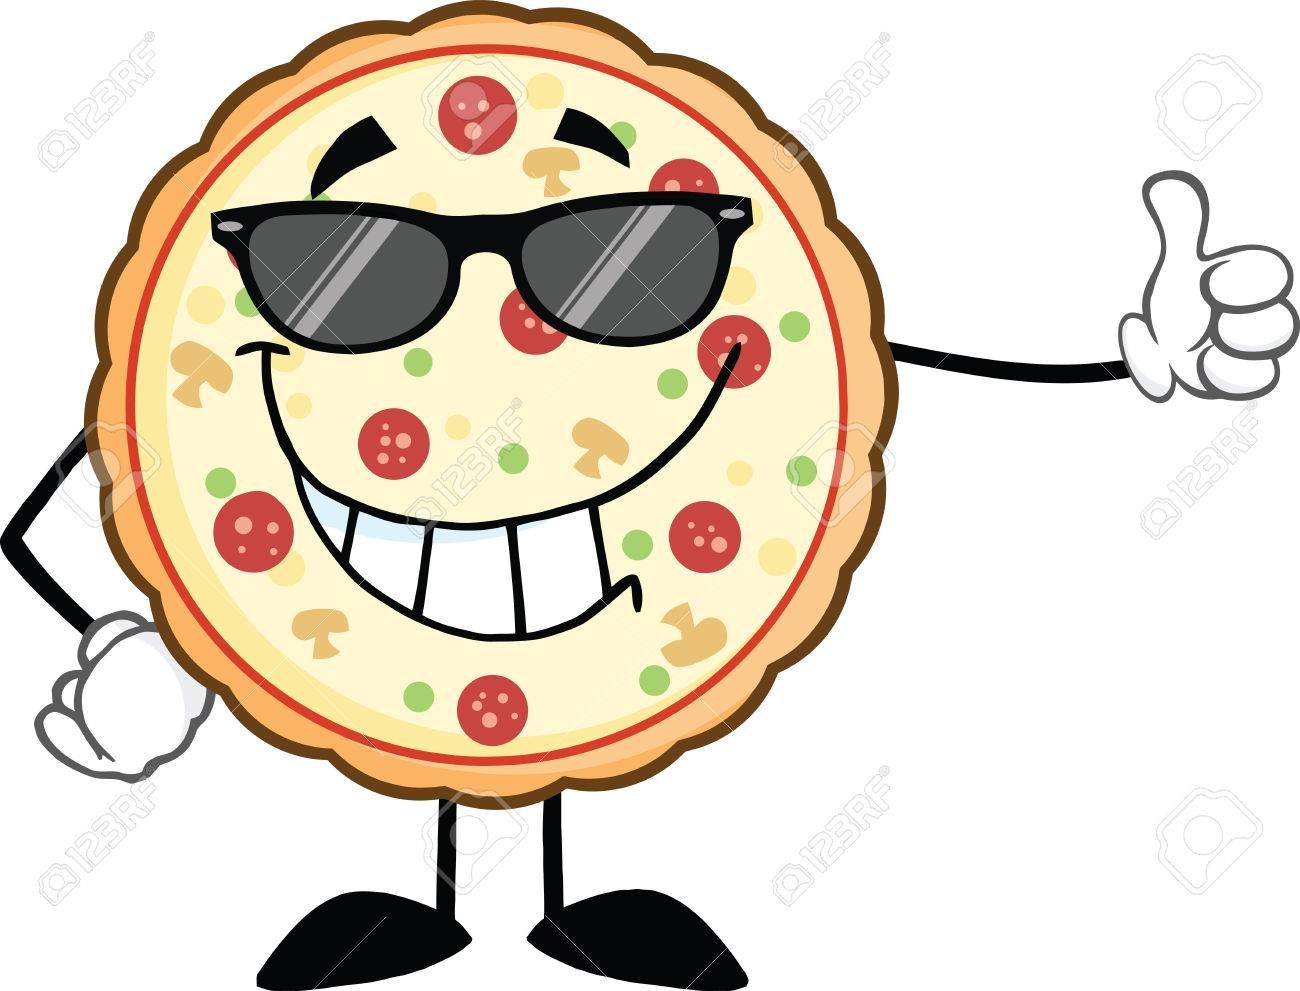 Smiling Pizza With Sunglasses Giving A Thumb Up Illustration ...